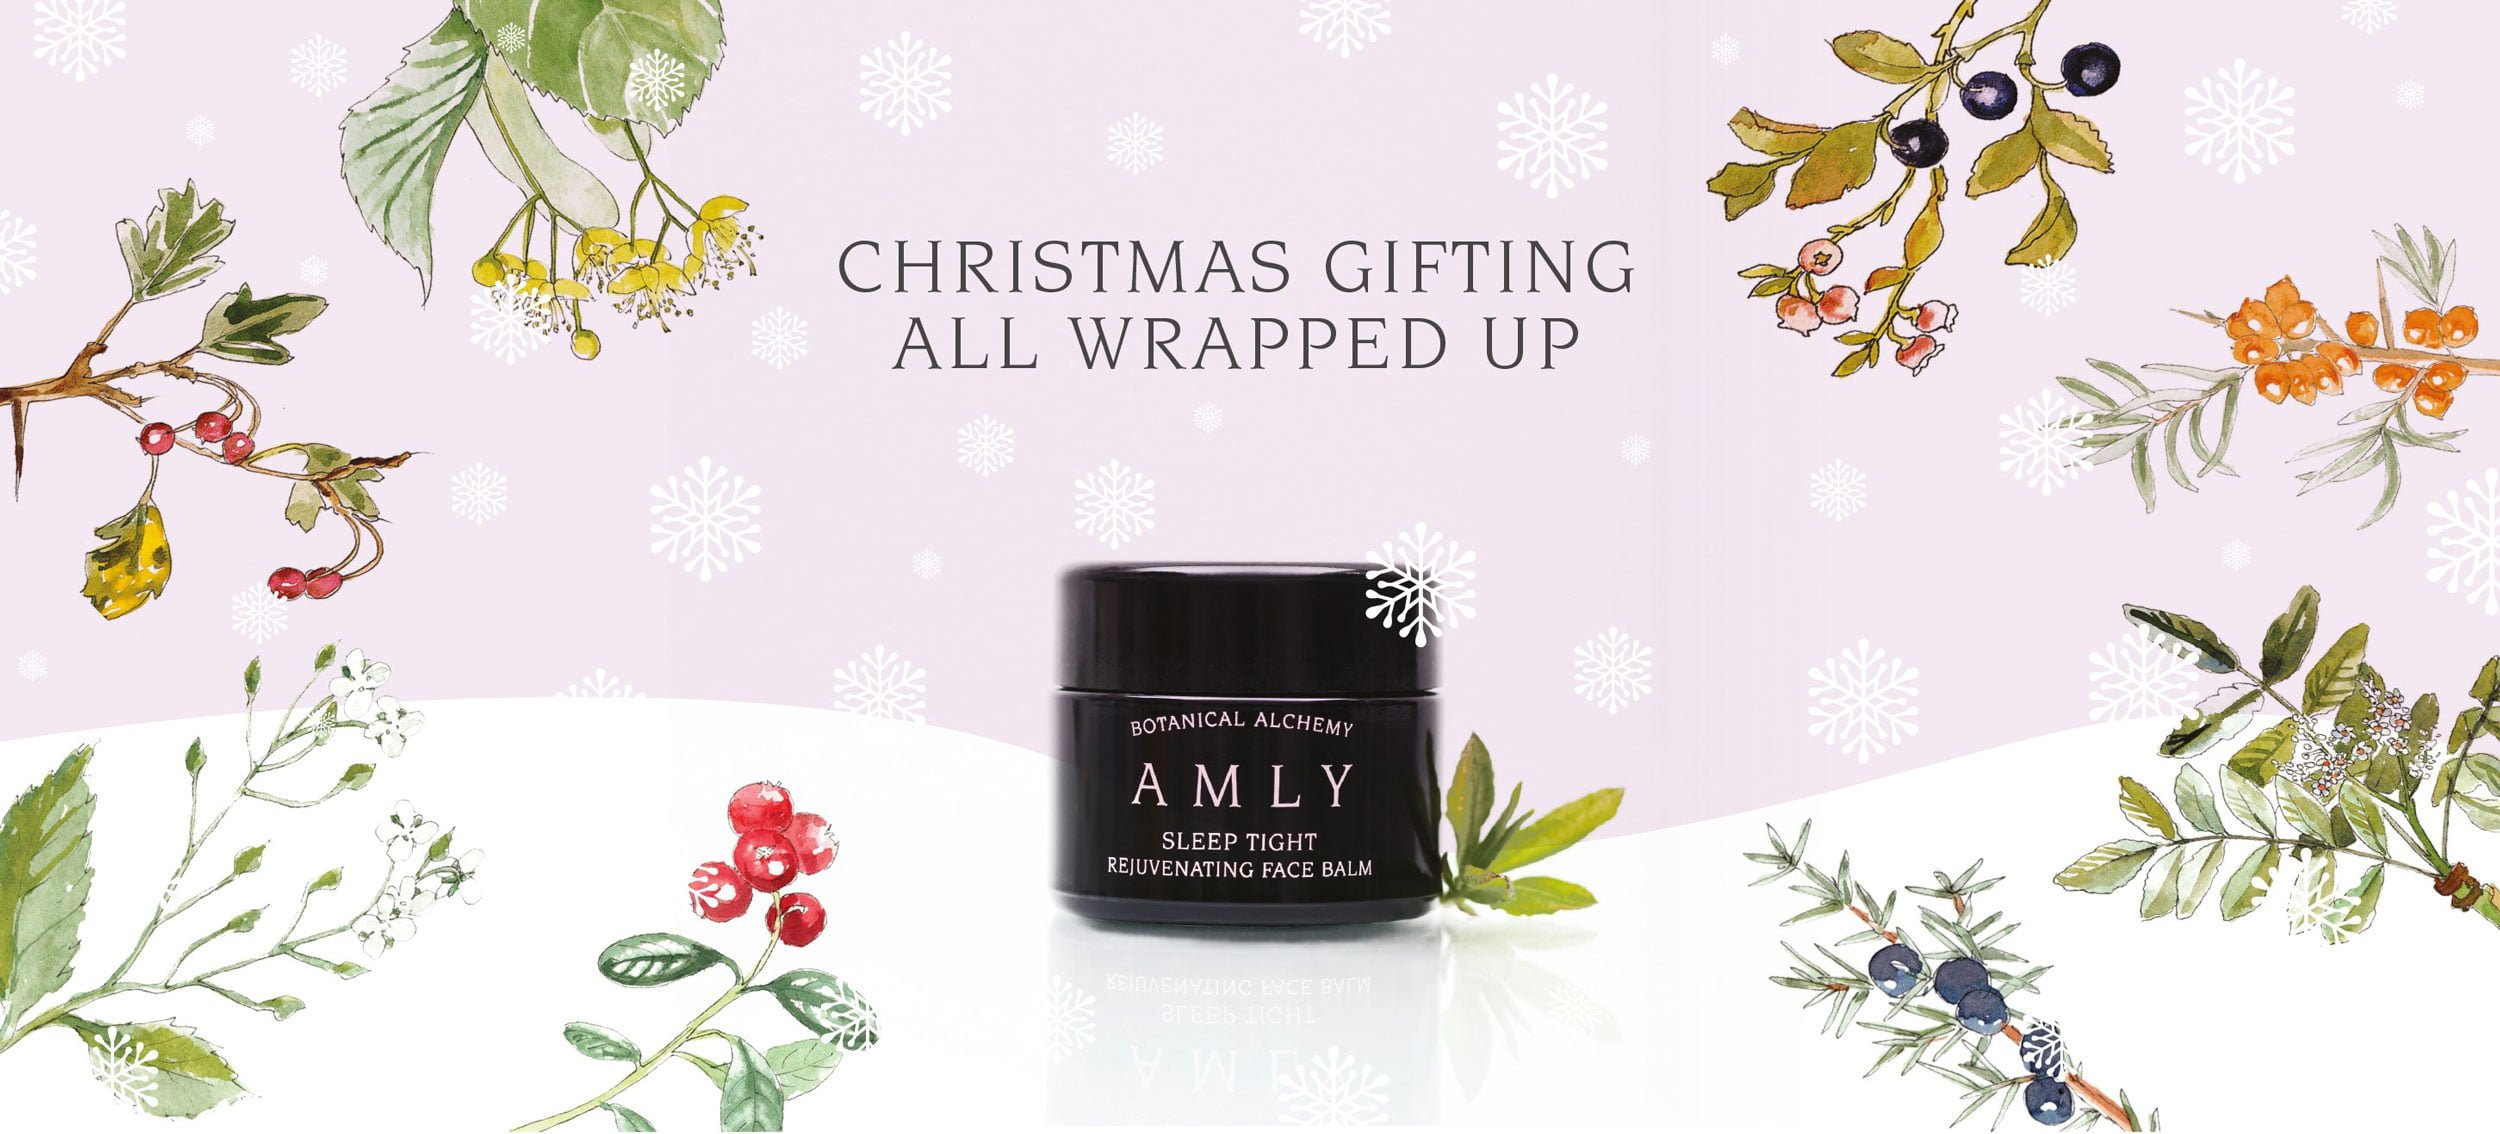 AMLY Botanicals Christmas poster with sleep tight revuneating face balm and wild flower illustrations landscape